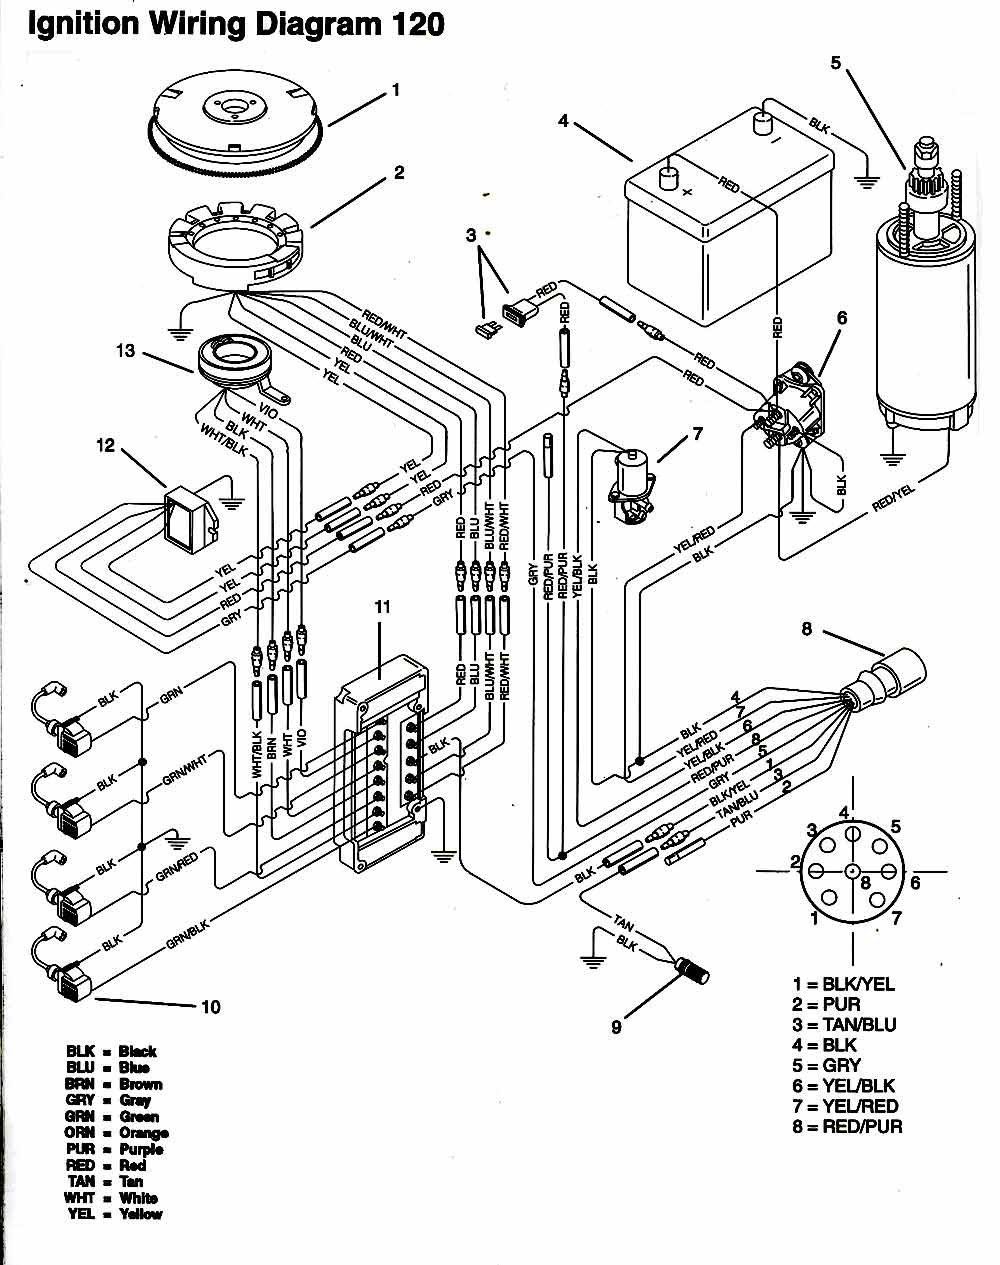 diagram] yamaha 4 stroke outboard wiring diagram full version hd quality wiring  diagram - tierdiagram.sfisp.it  sfisp.it